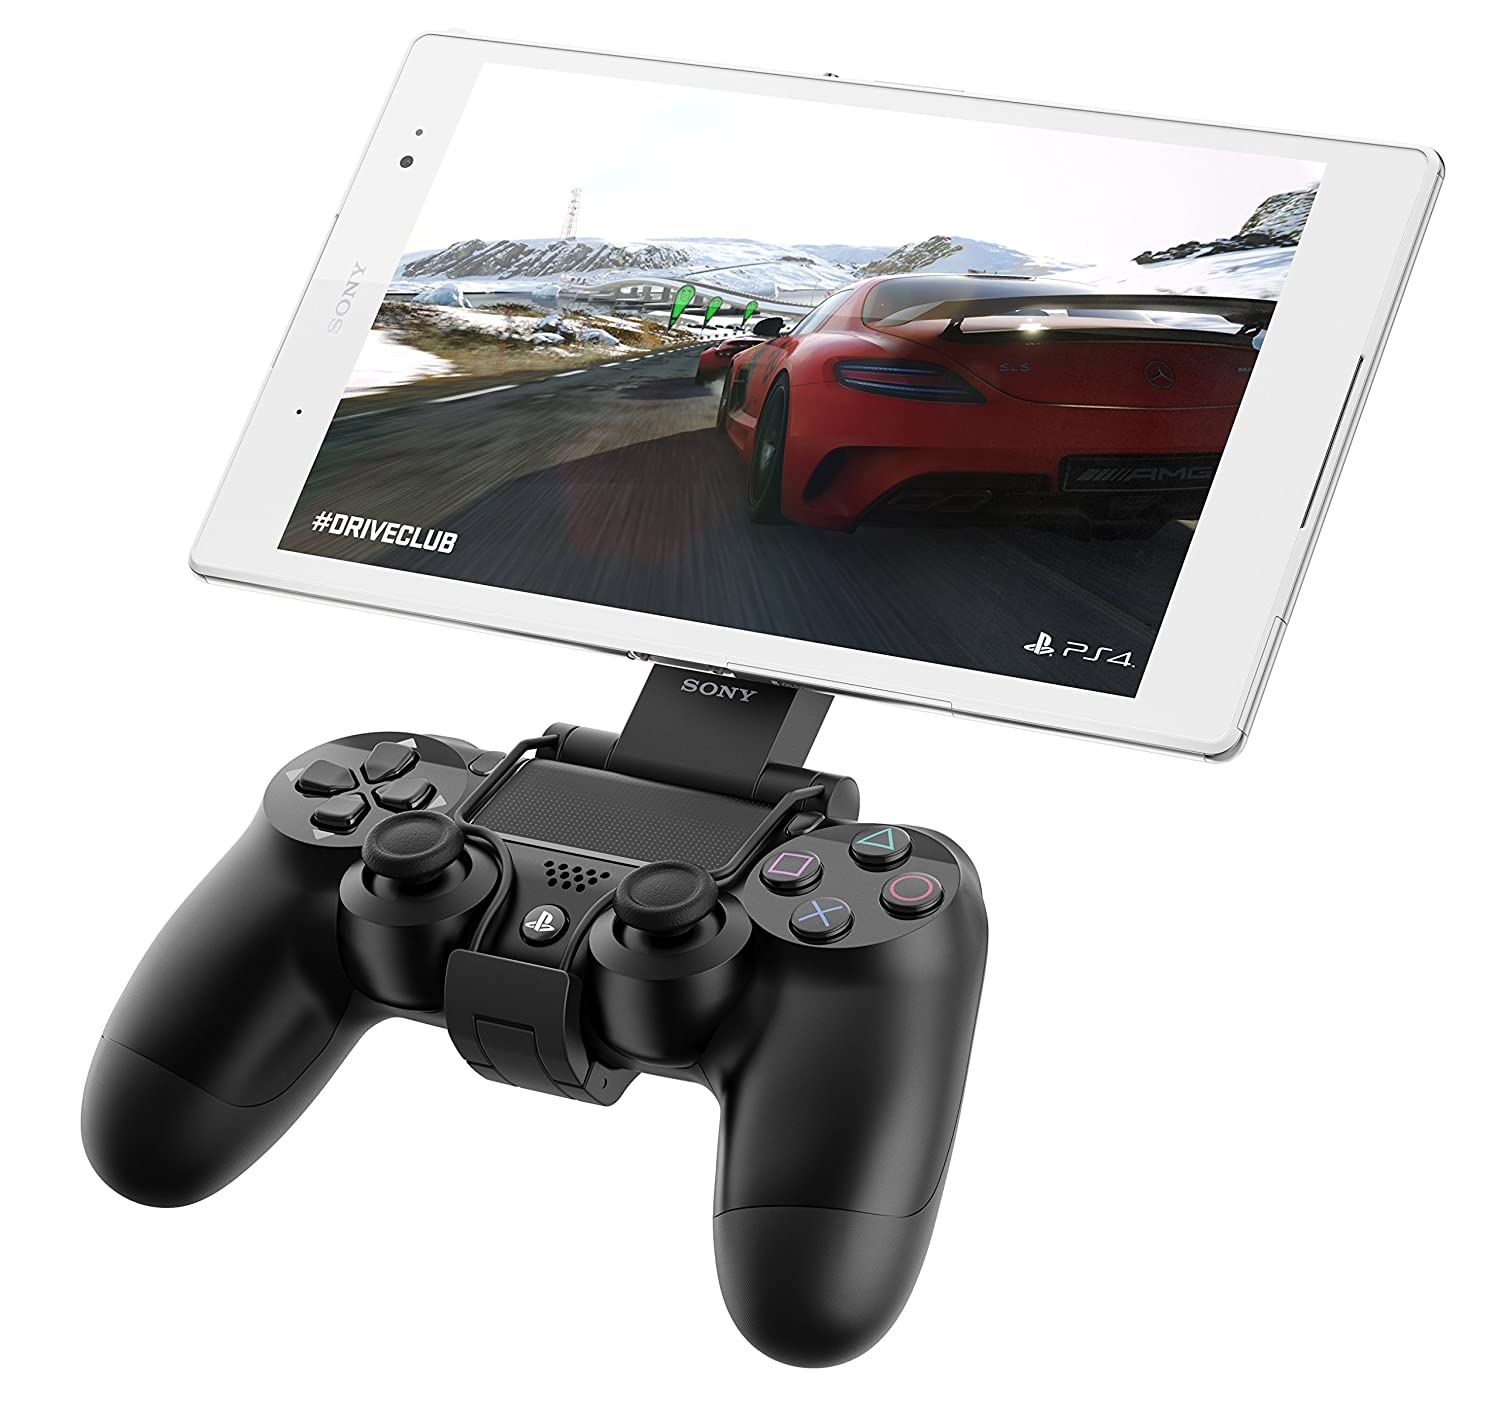 Sony Game Control Mount Gaming Halterung Kompatibel mit Amazon